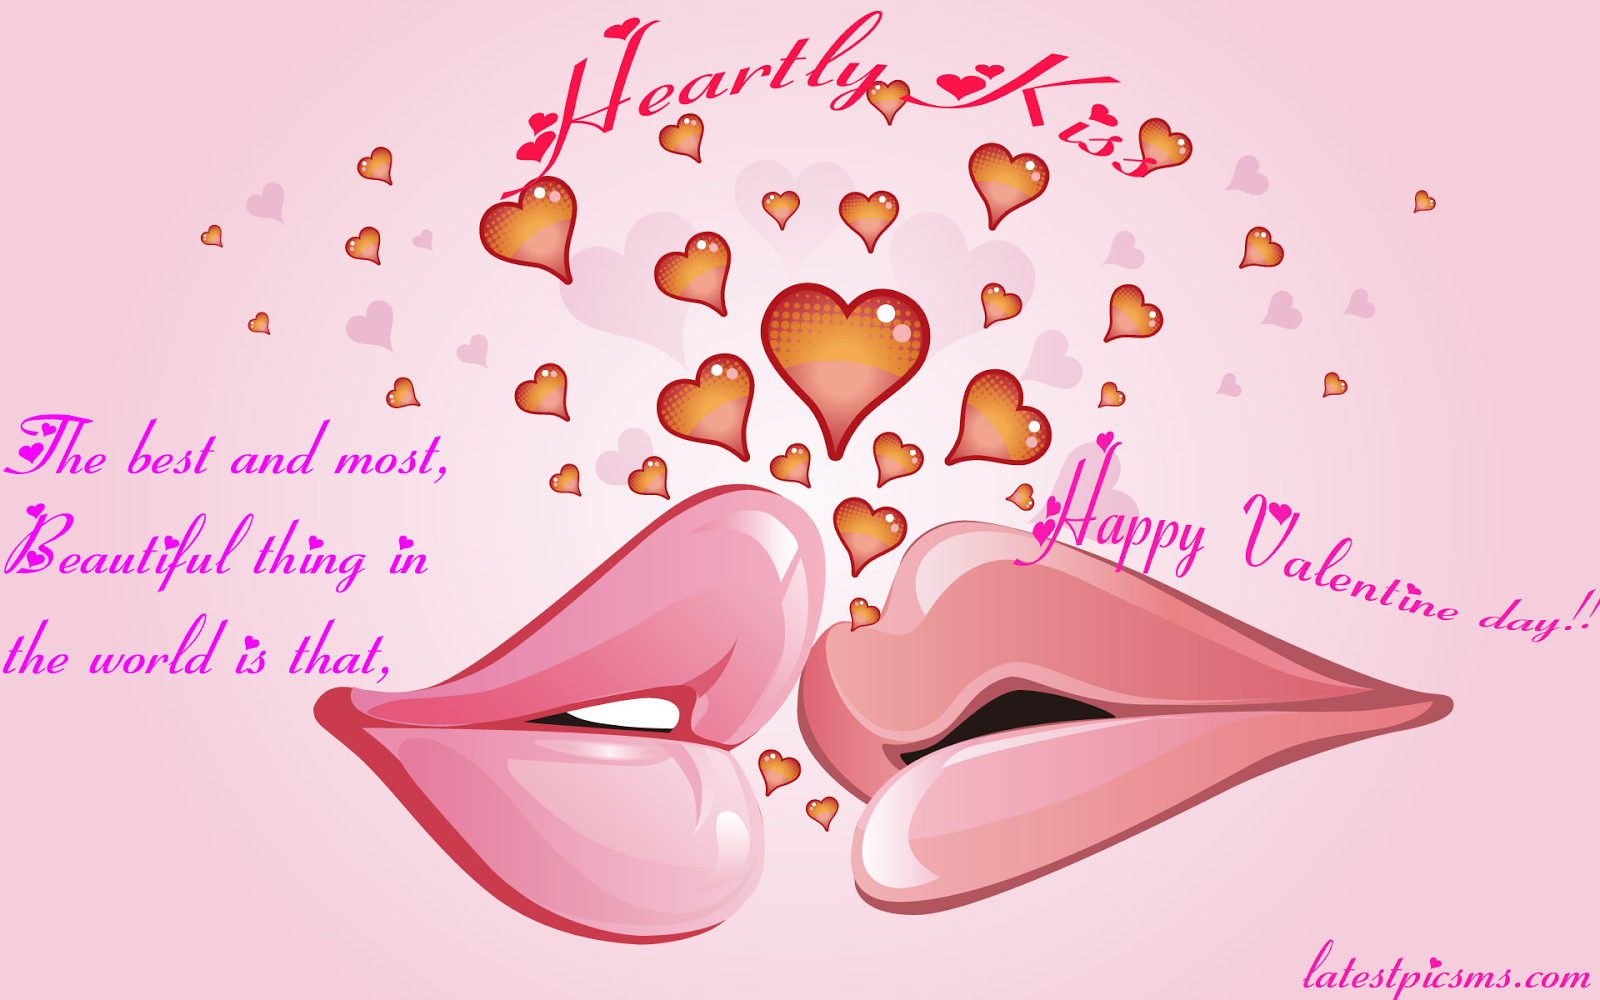 Valentine%25E2%2580%2599s Day 3D Heartly Kiss HD Wallpaper - Amazing Valentine Heart Kiss Messages with HD Photos for Whatsapp & Fb